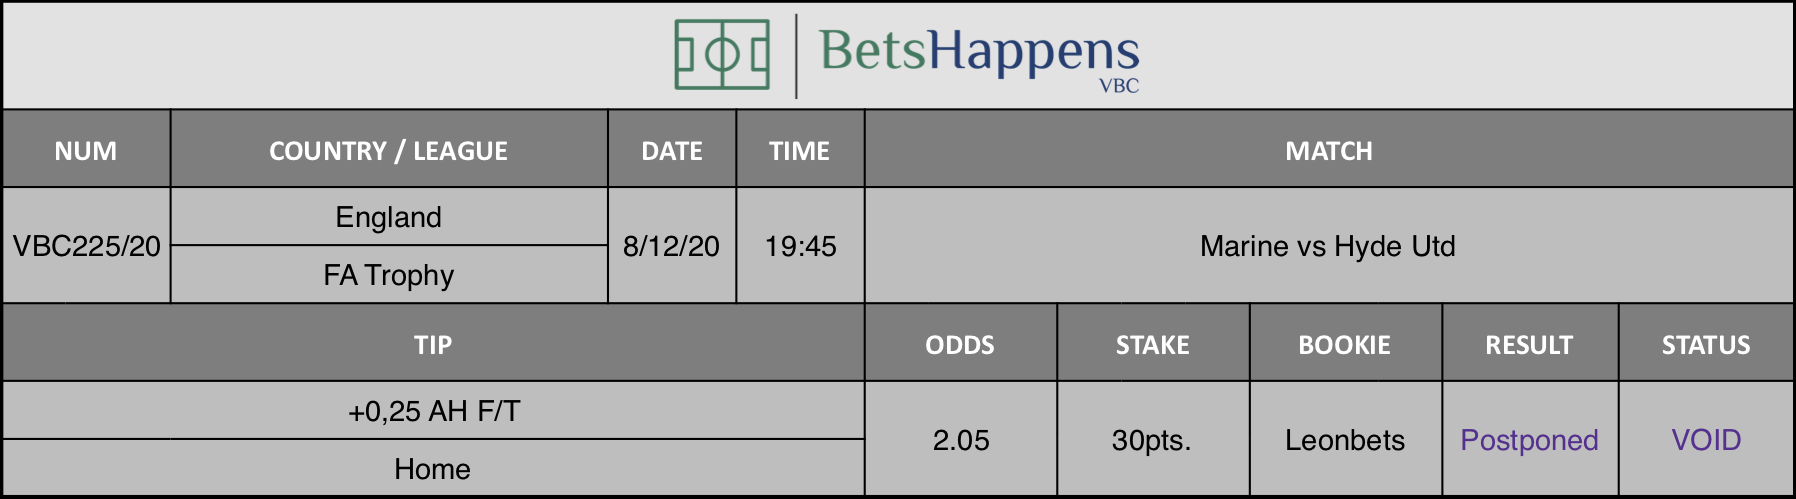 Results of our tip for the Marine vs Hyde Utd match where +0,25 AH F/T  Home is recommended.